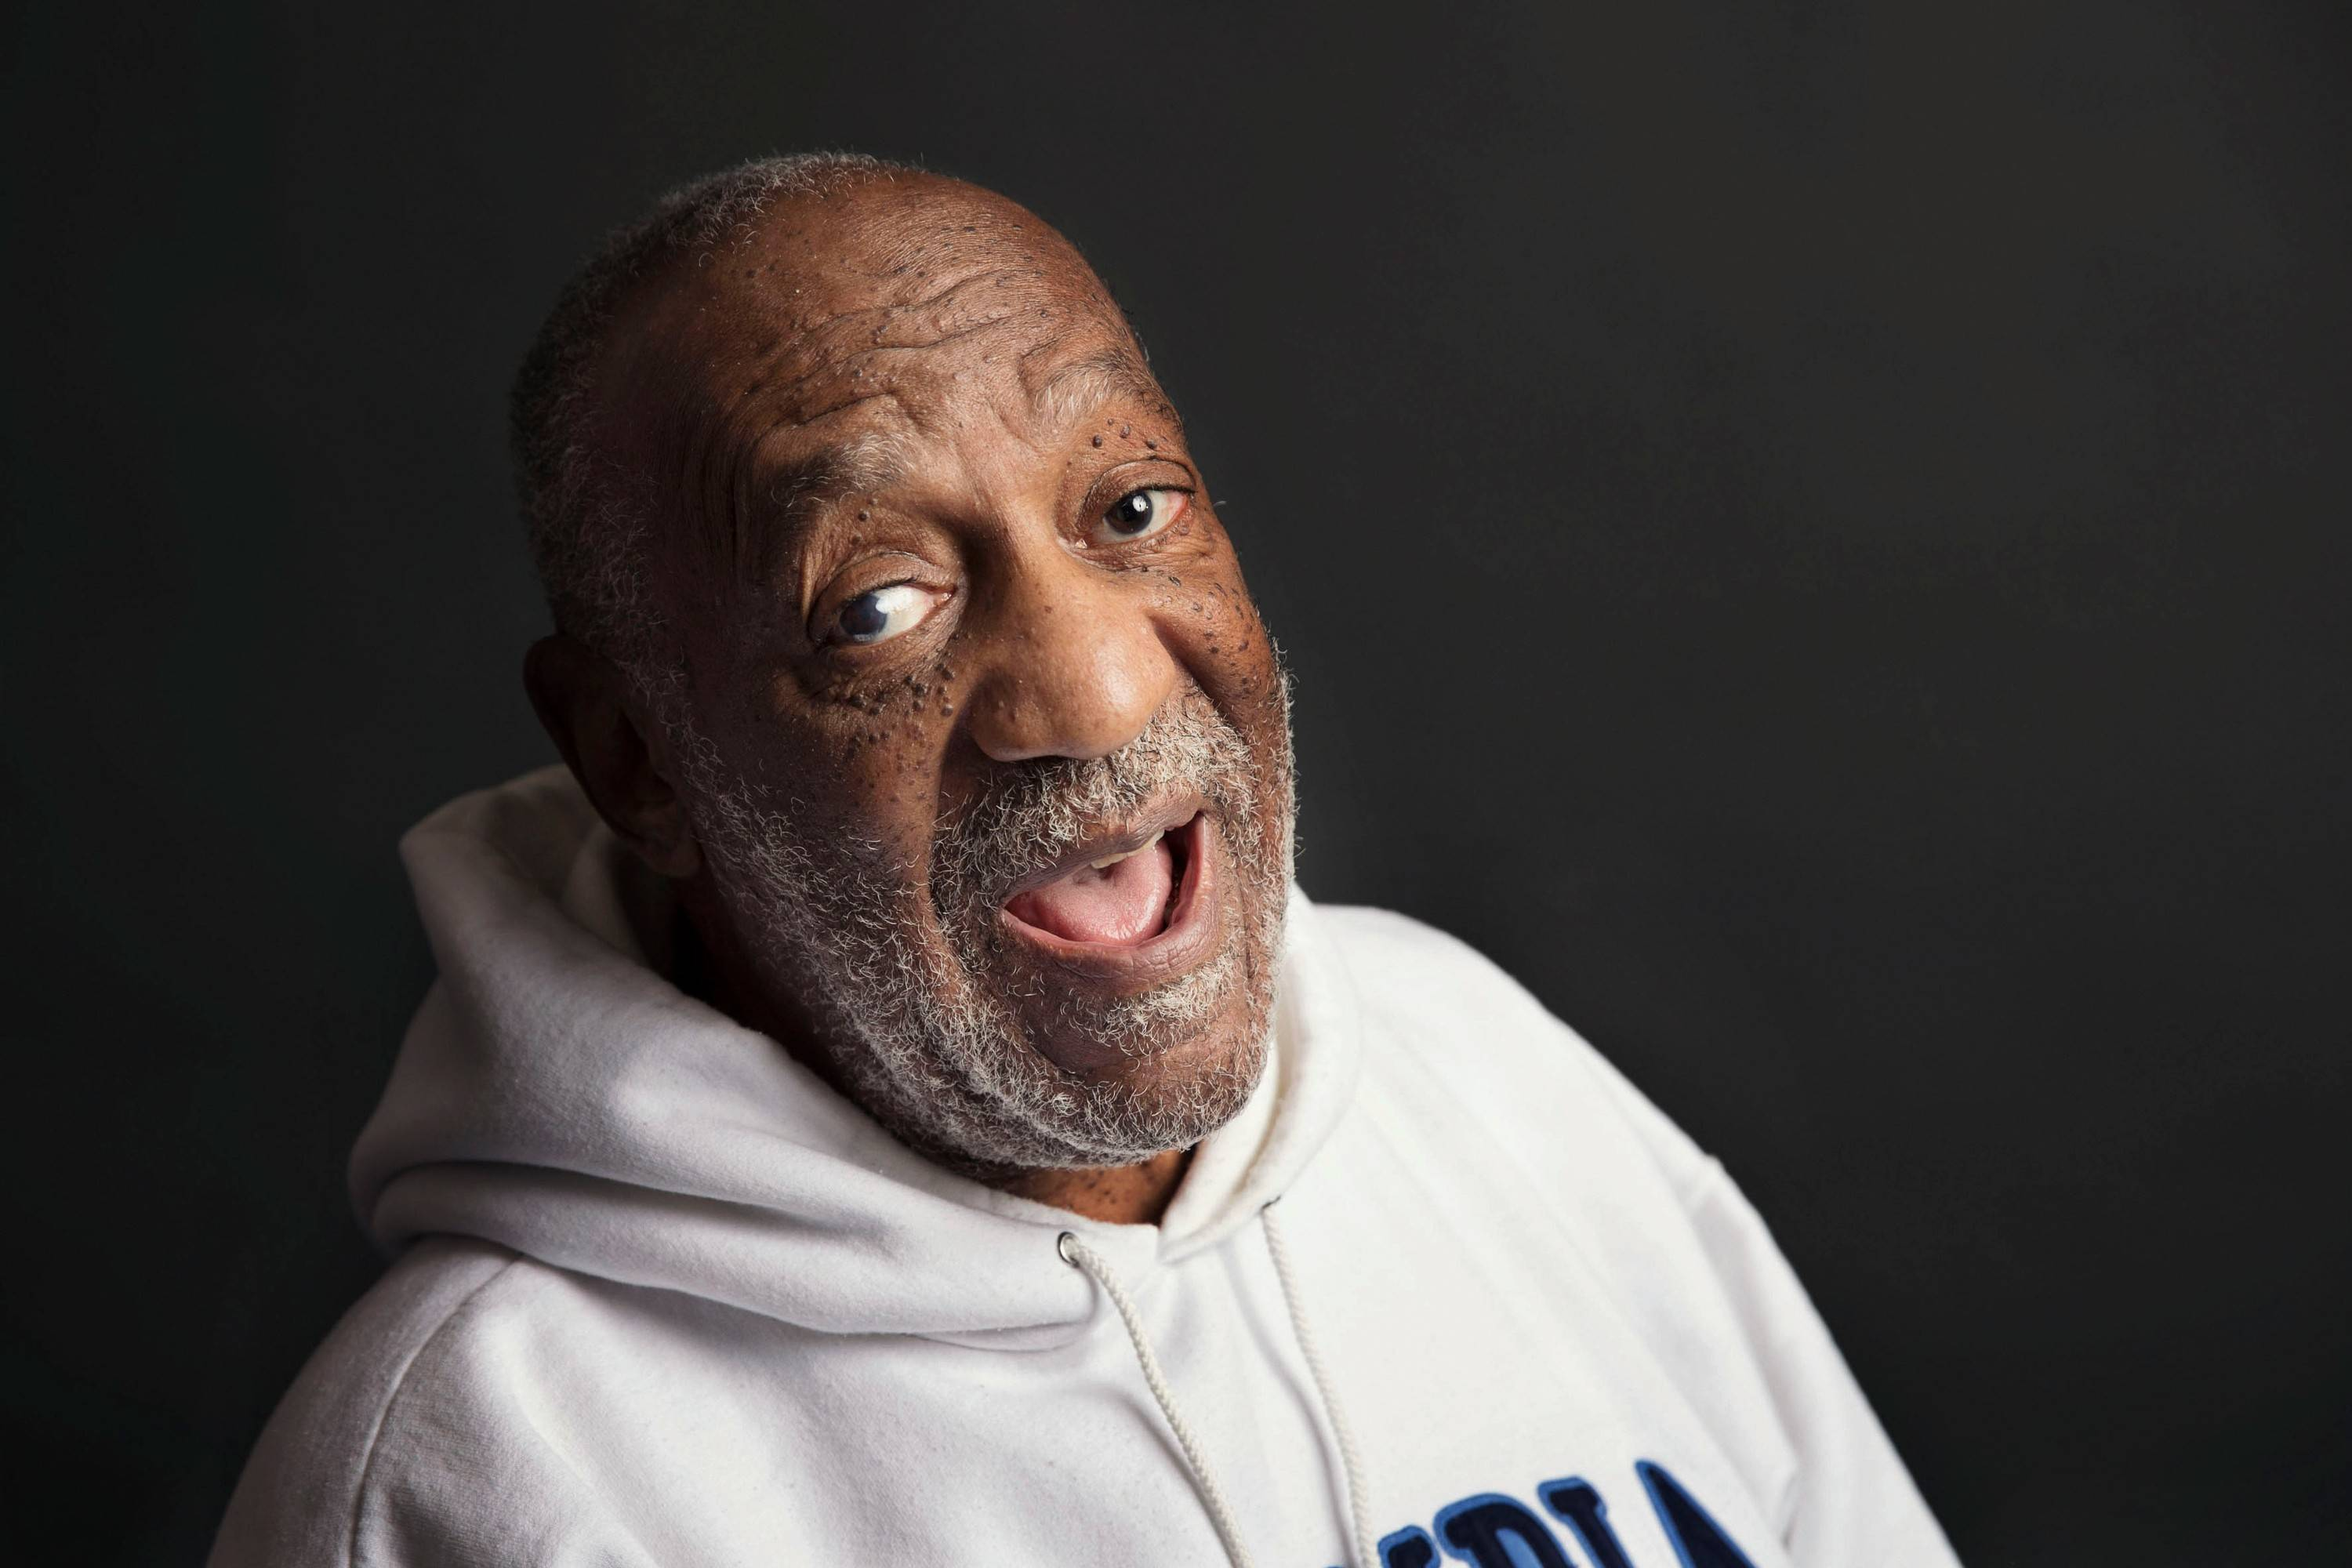 Tickets for Bill Cosby's Nov. 15 performance at the Rosemont Theatre go on sale April 4.